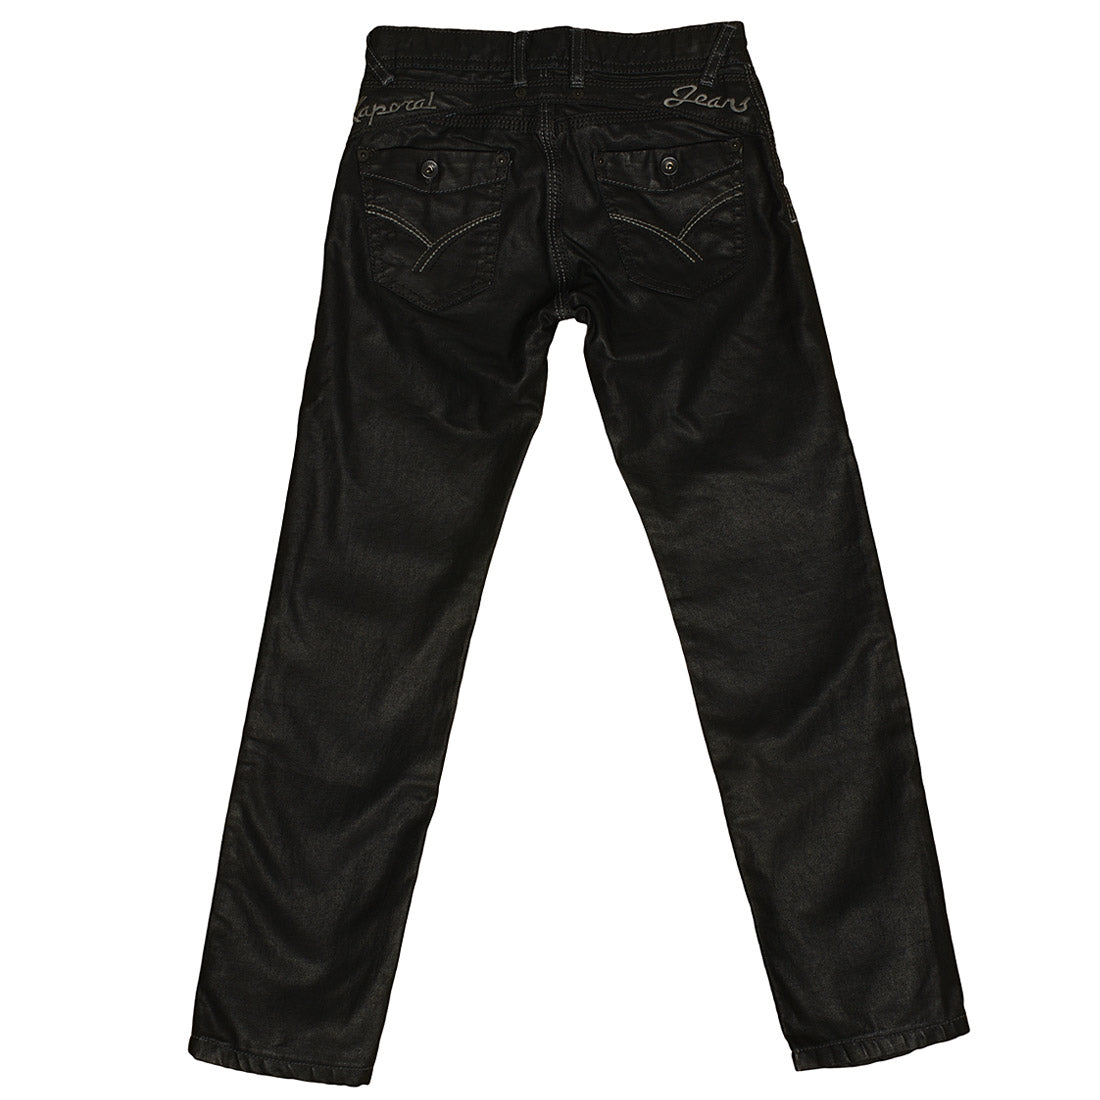 Kaporal Boys - Straight Fit Black Jeans